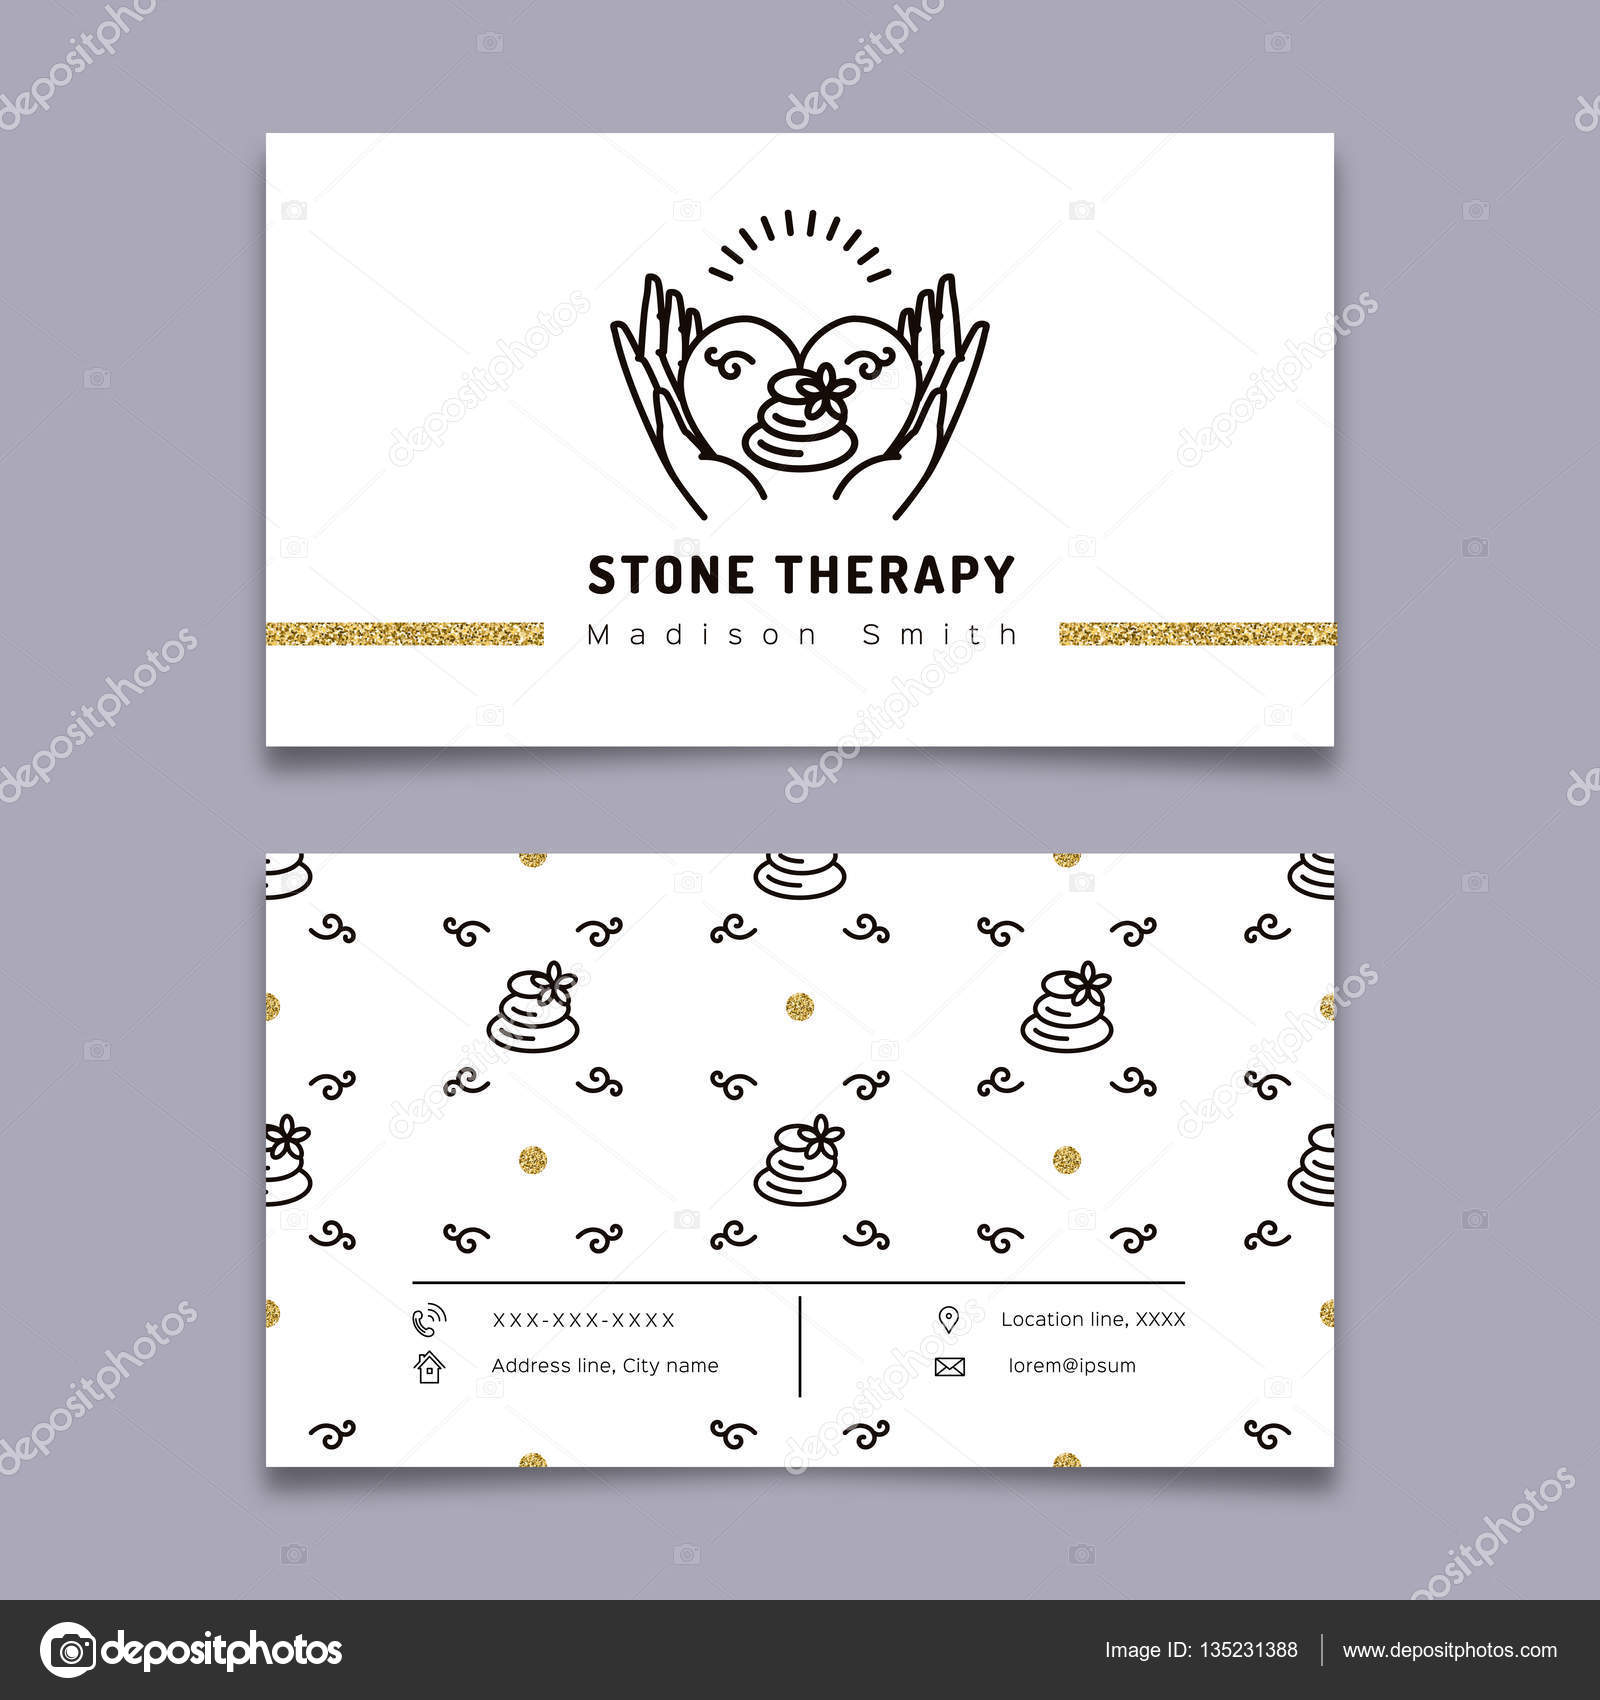 Stone therapy business card. Massage, beauty spa, relax, natural ...